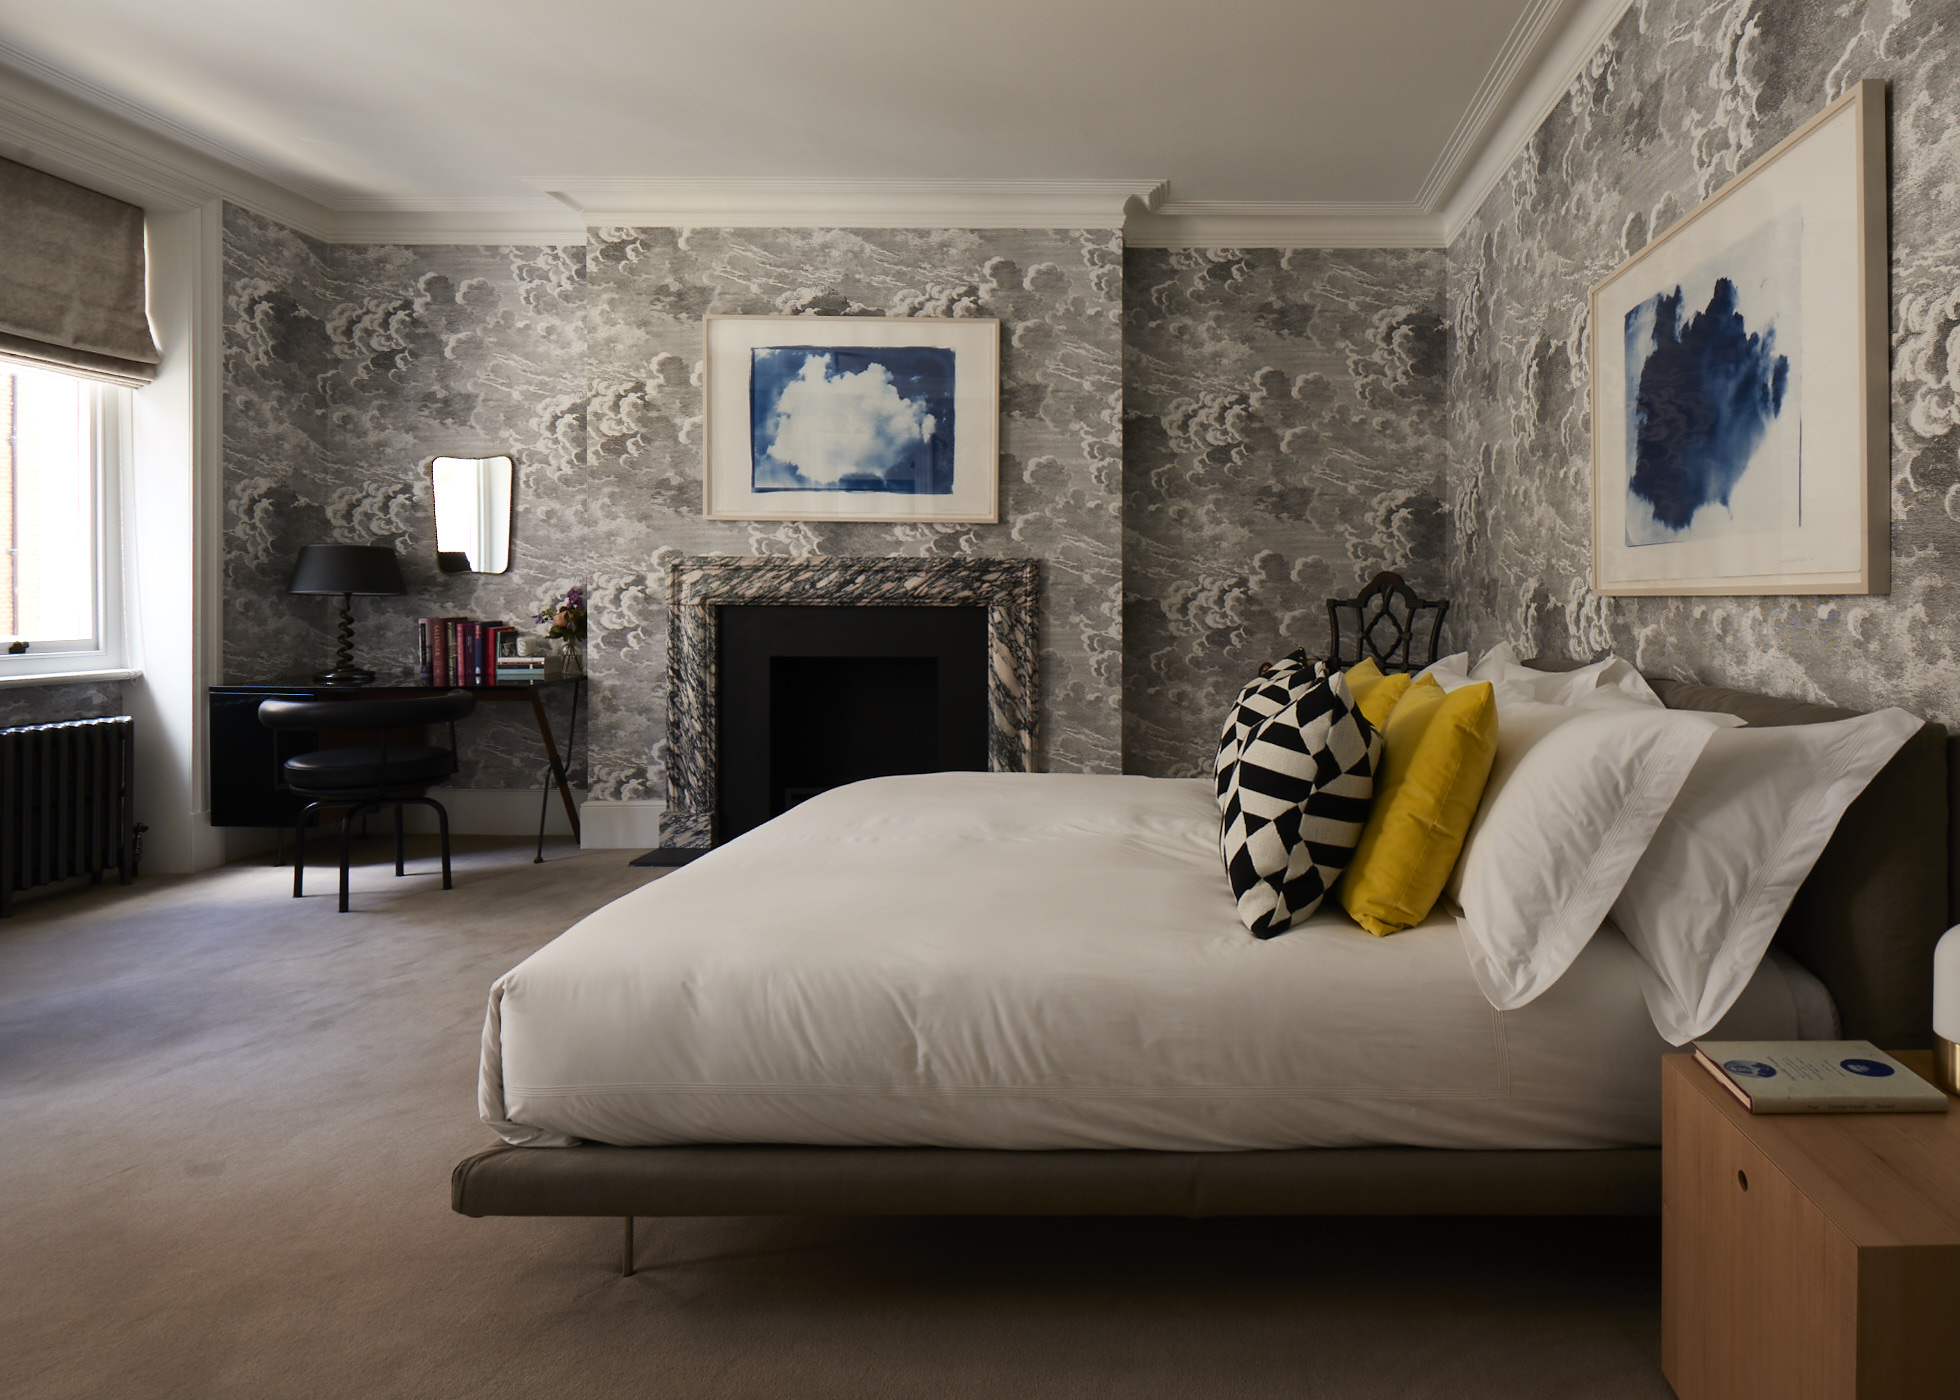 The guest bedroom with clouds wallpaper by Piero Fornasetti.